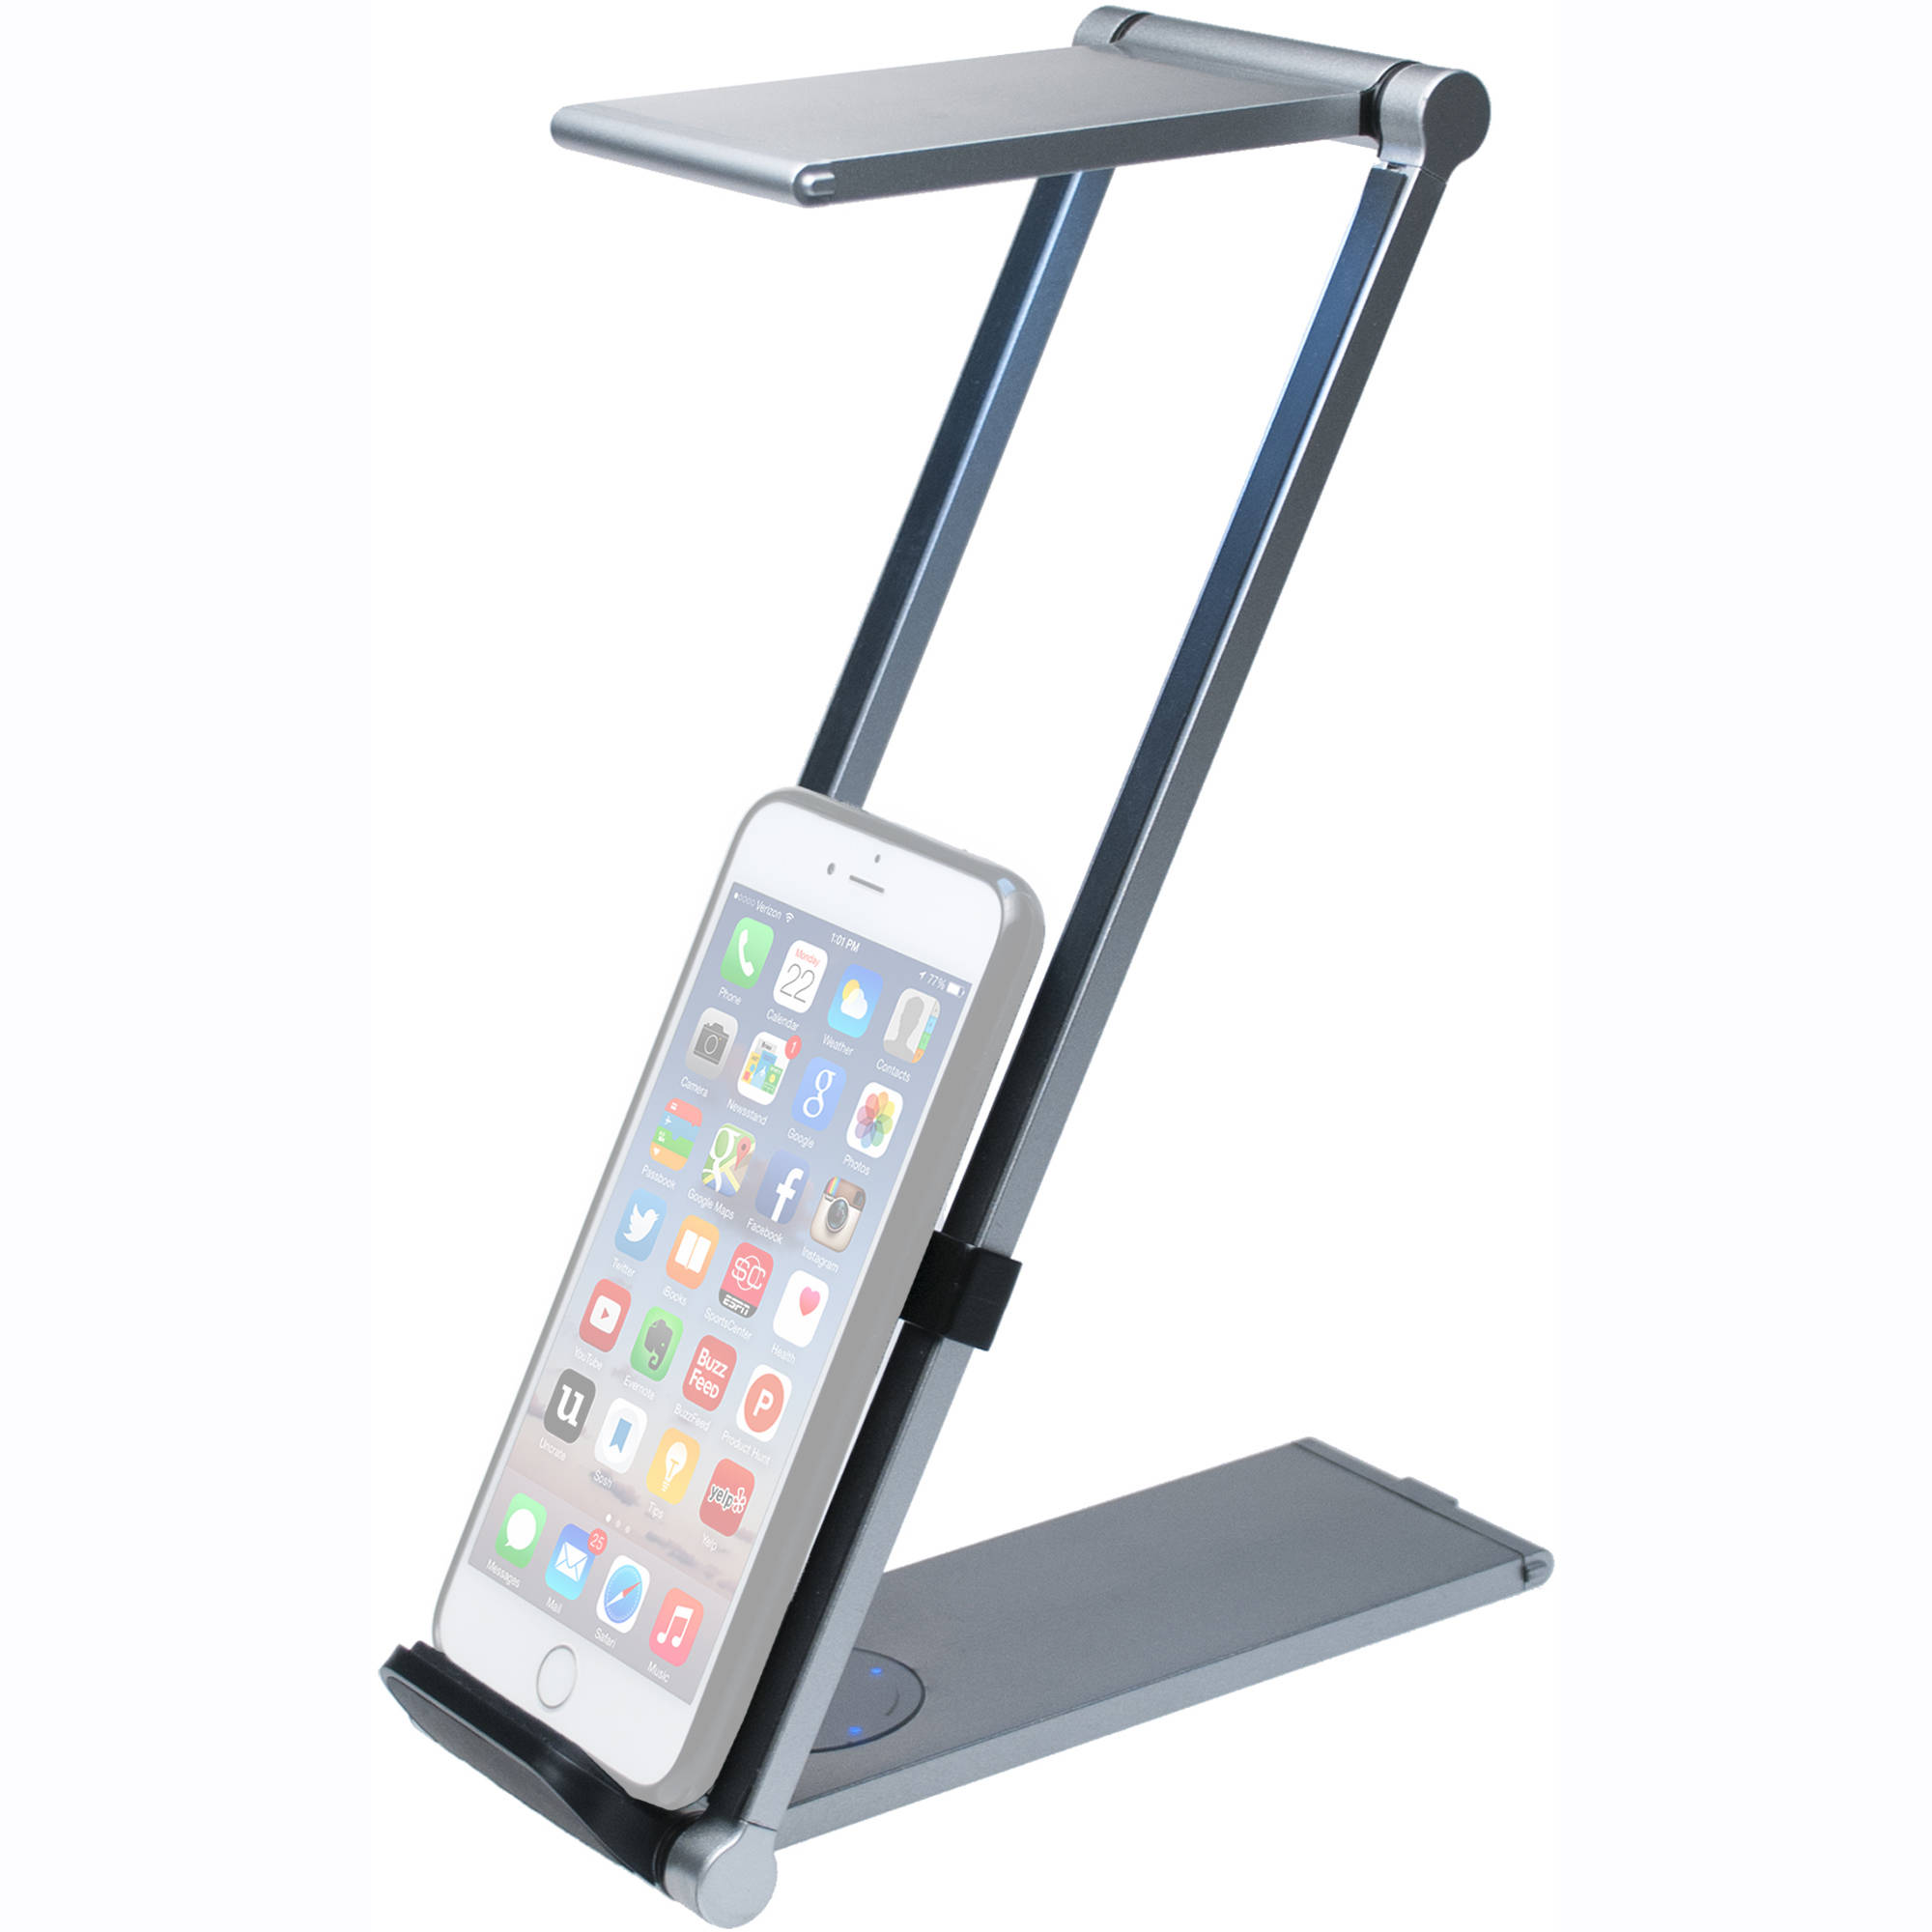 Smartphones Led Foldable And Lamp For Tablets Stand Desk If7b6vgyY